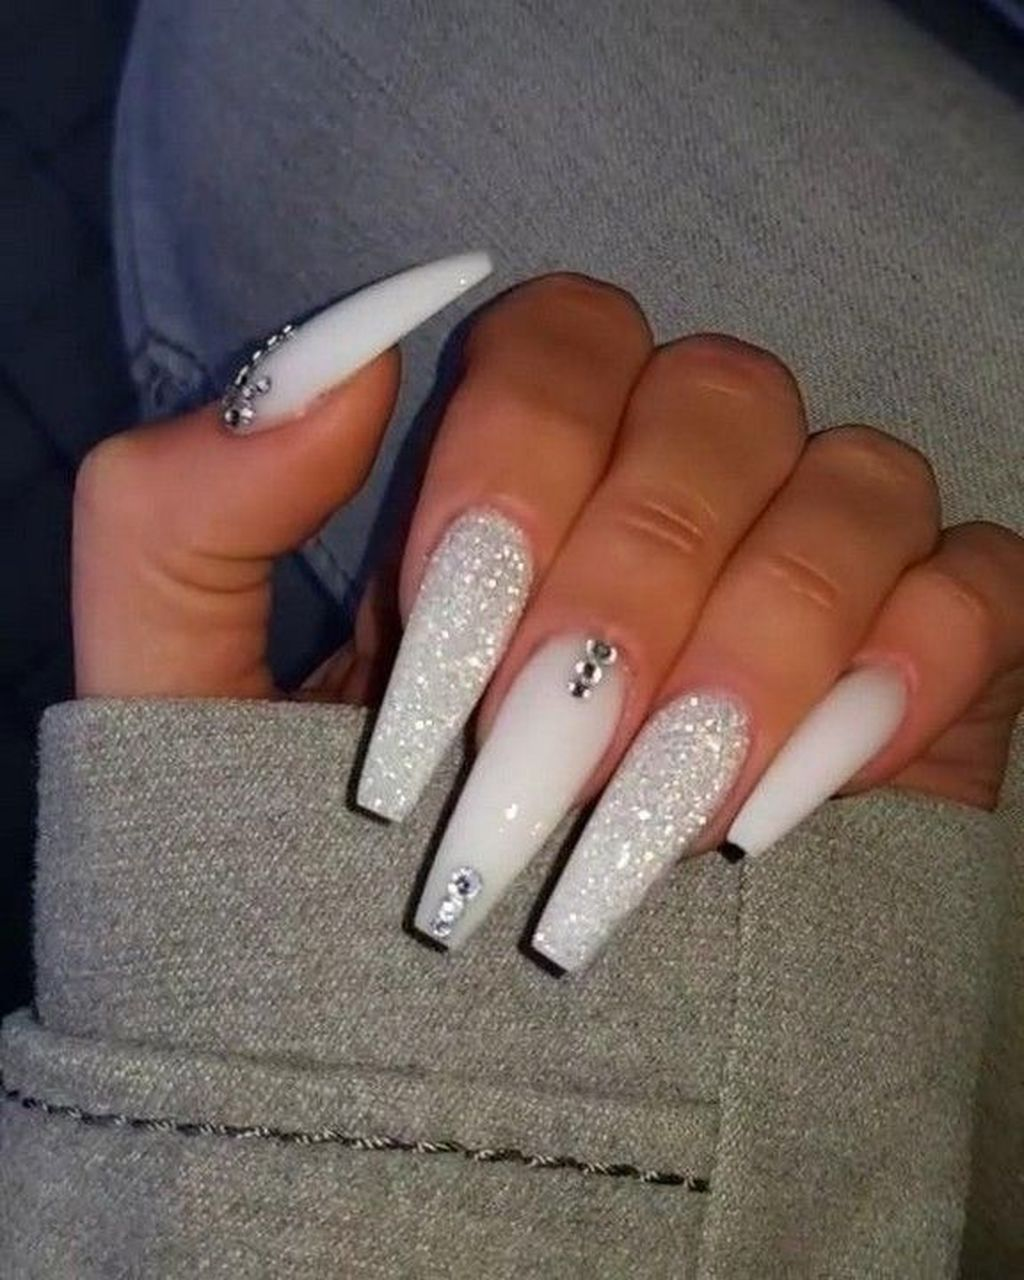 30 Casual Acrylic Nail Art Designs Ideas To Fascinate Your Admirers In 2020 Best Acrylic Nails White Acrylic Nails Long Acrylic Nails